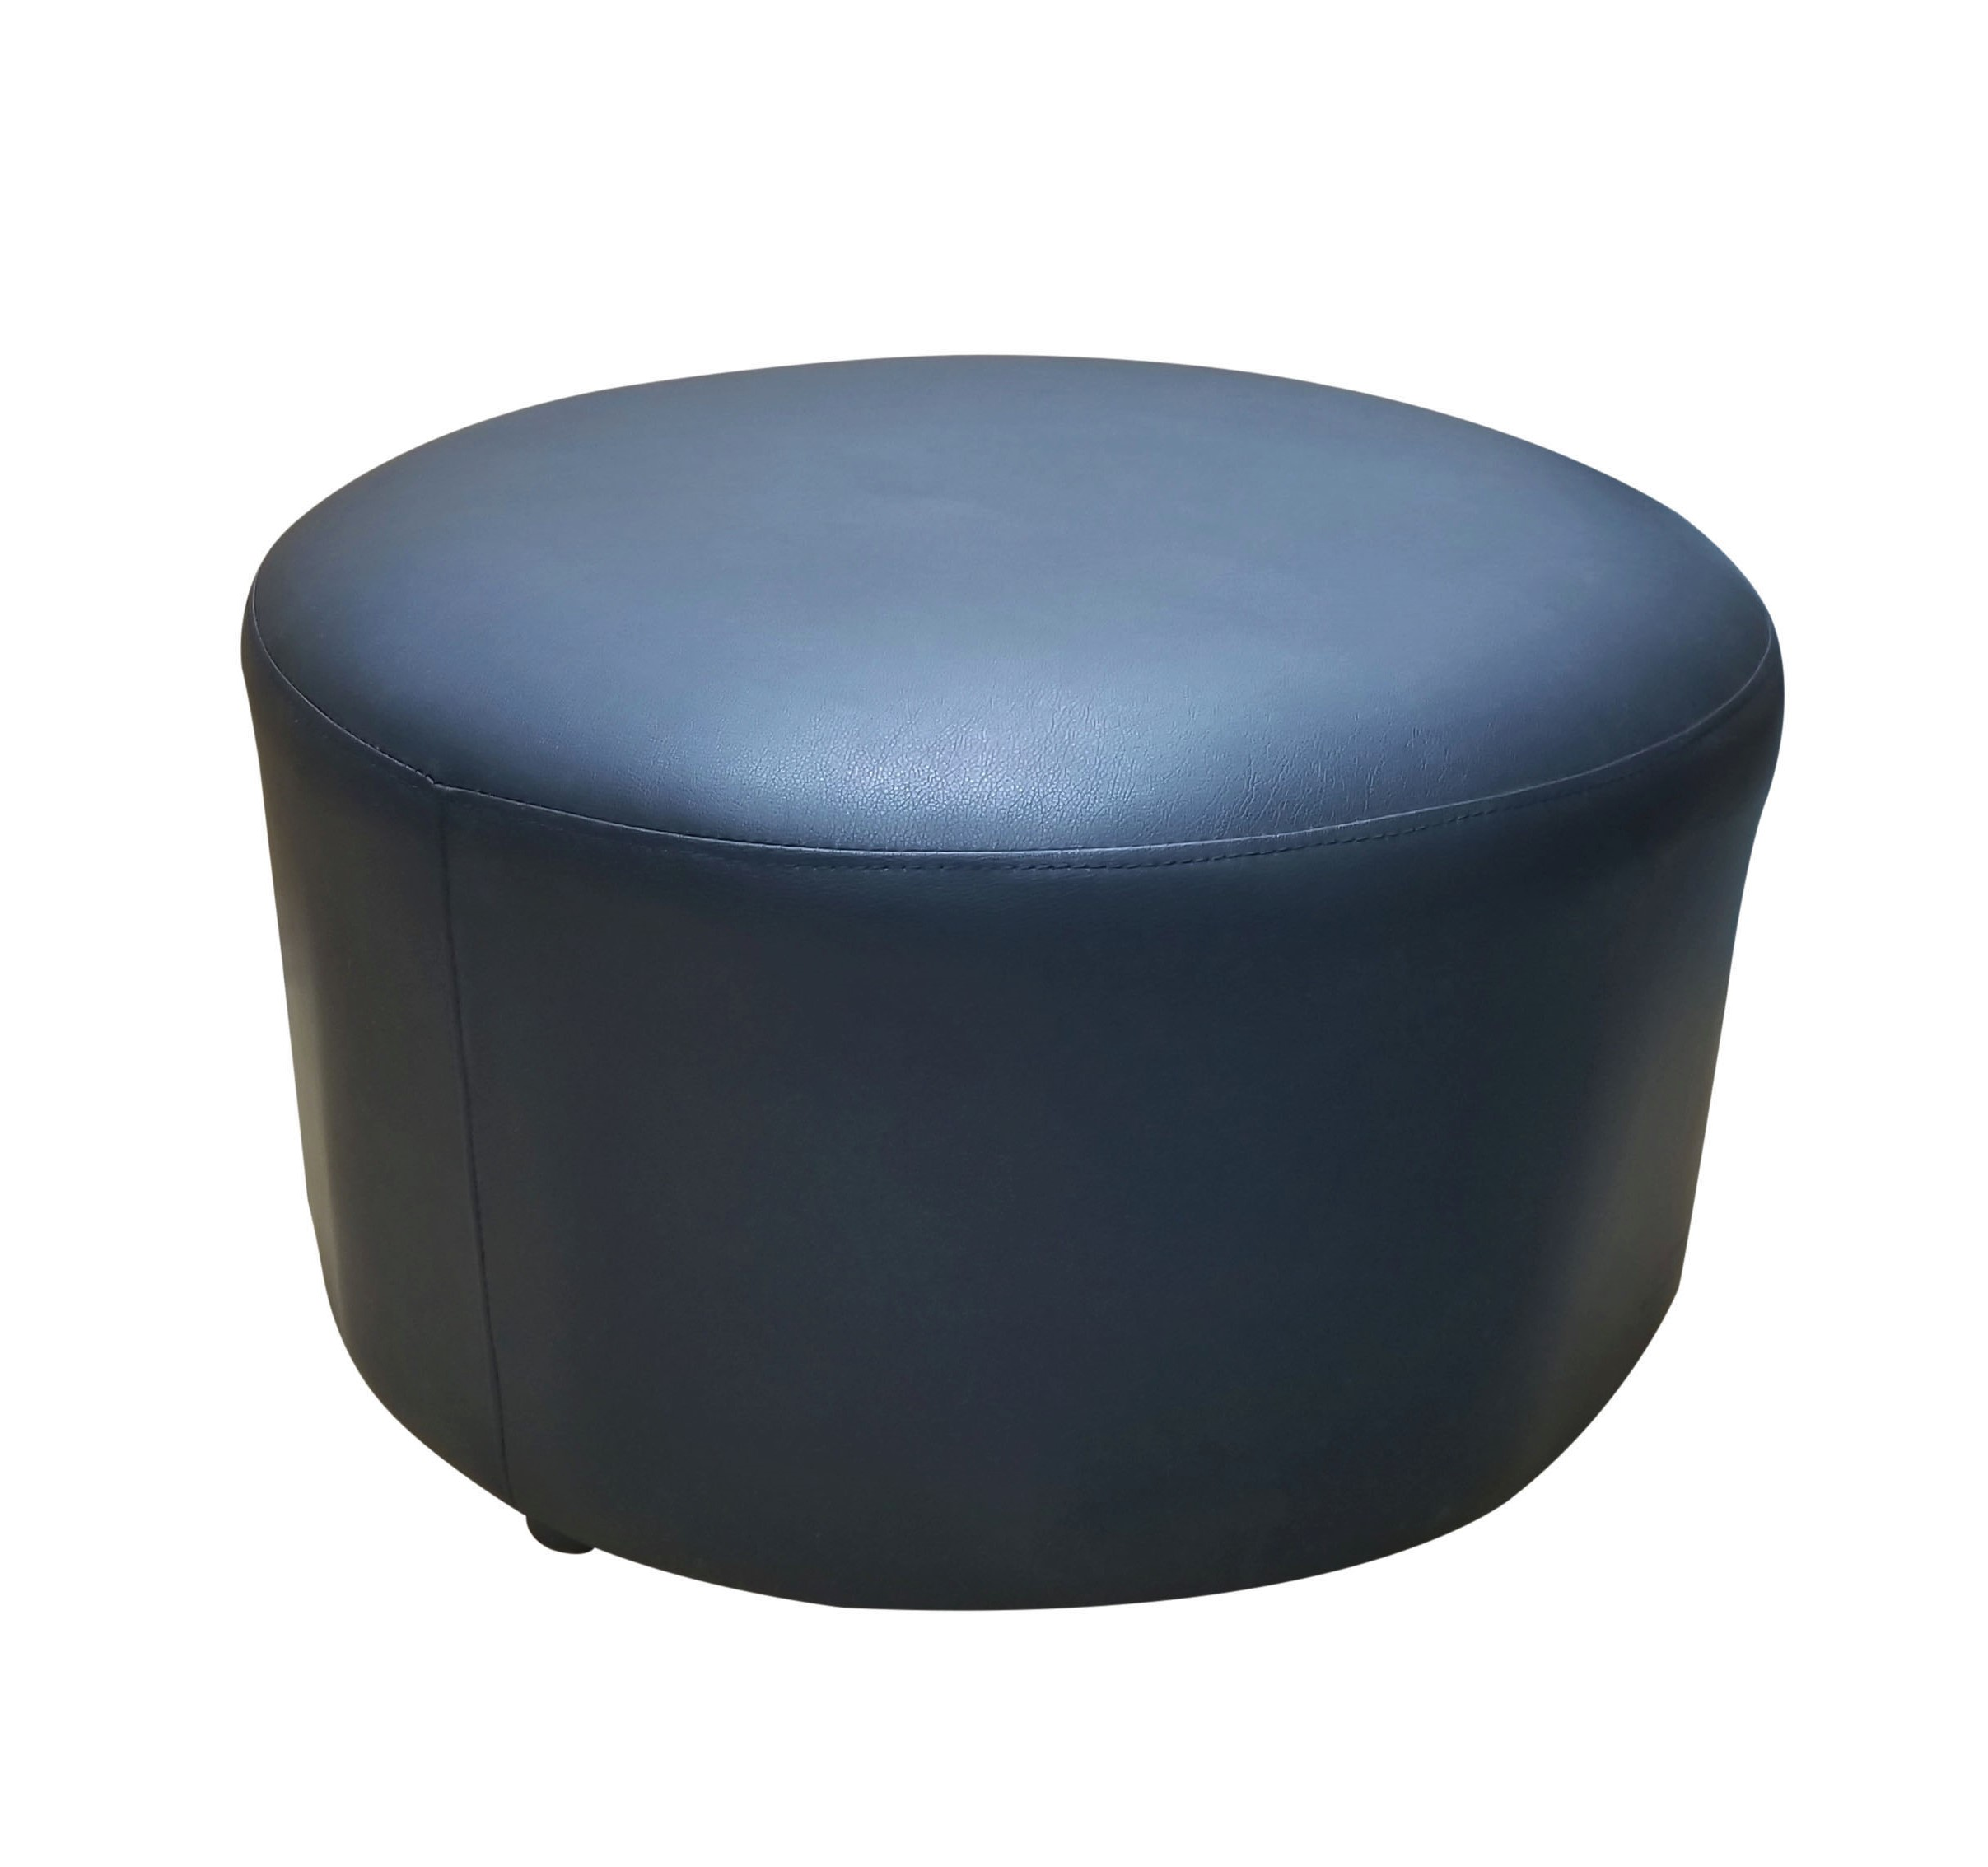 Pouf_Round_Black leather